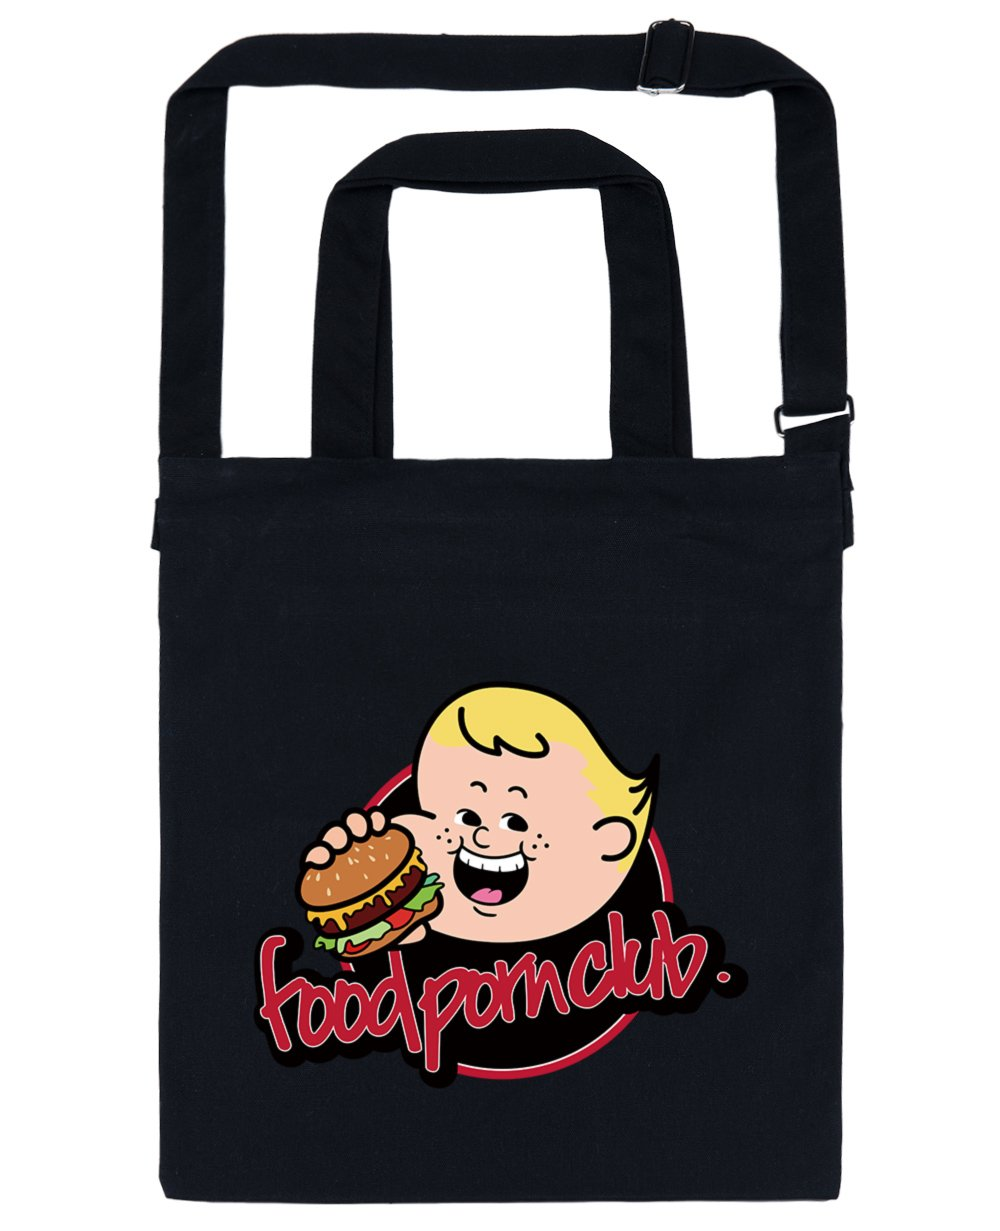 FPC Boo Print Tote Bag in Black - Tote bags - FOOD PORN CLUB - BRANMA